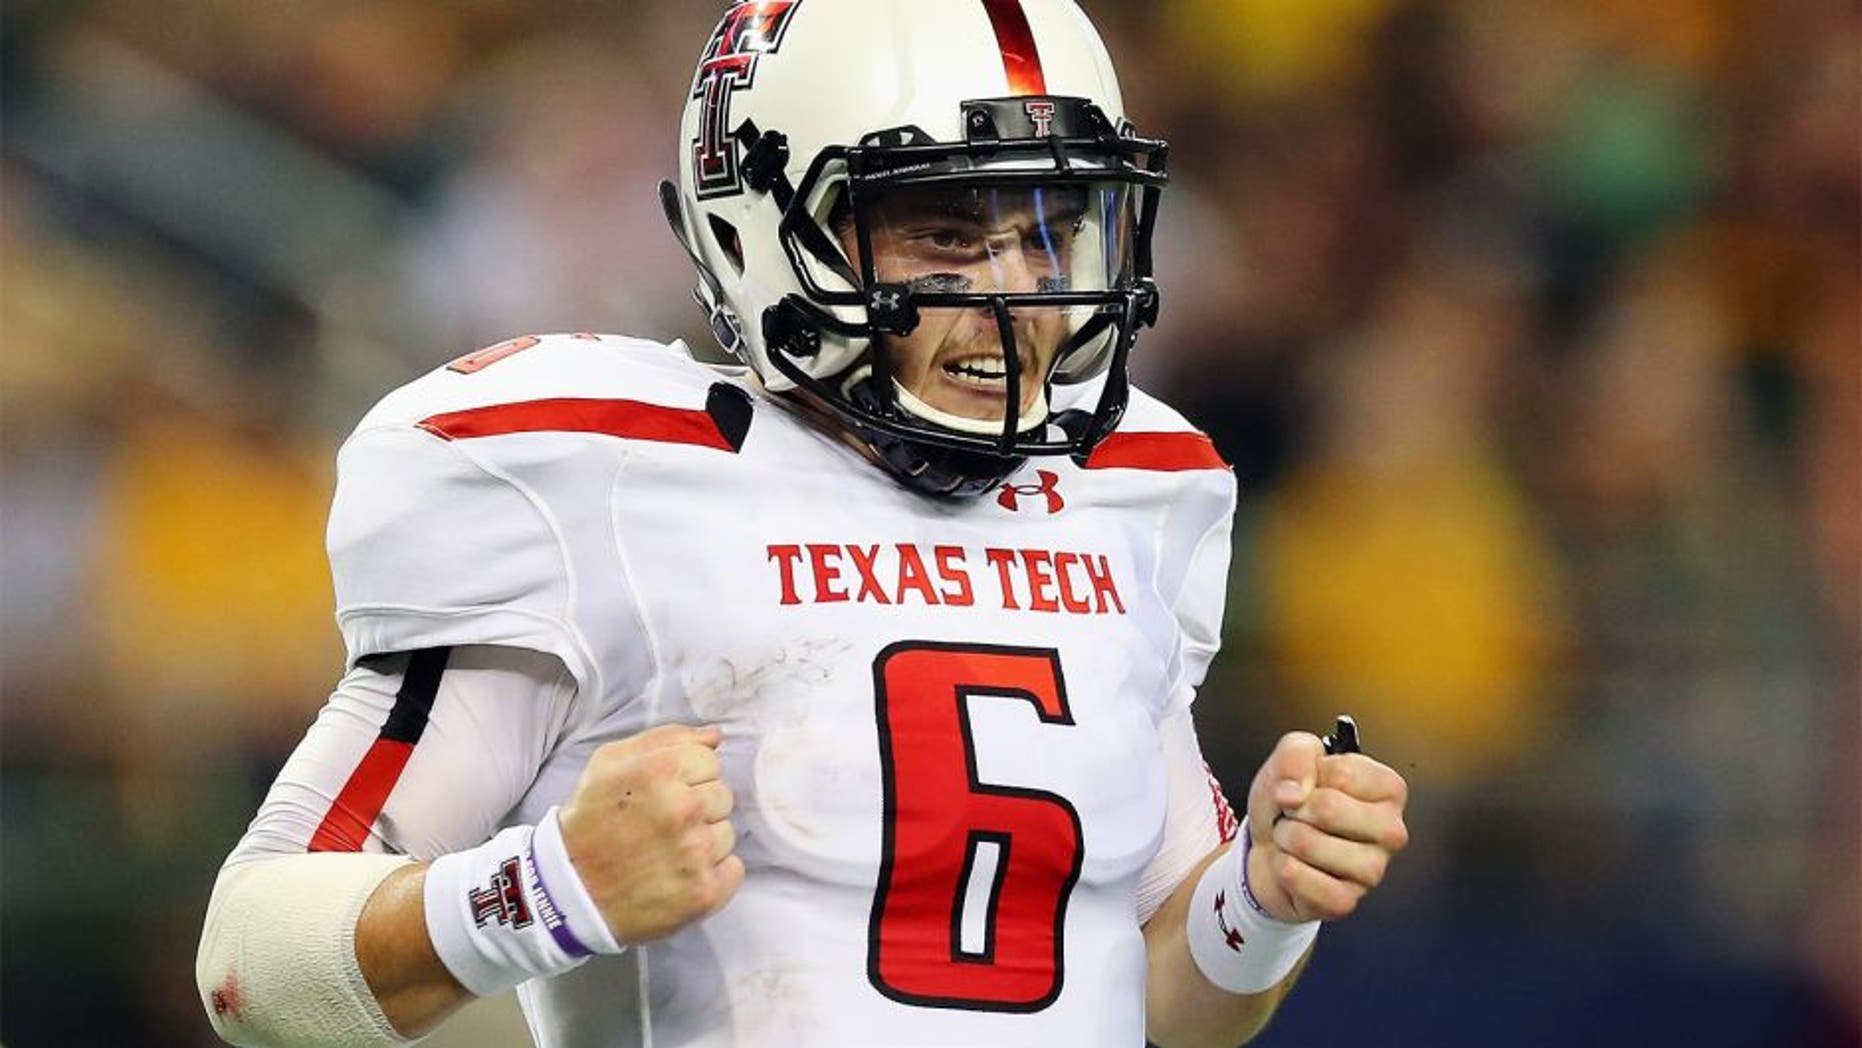 ARLINGTON, TX - NOVEMBER 16: Baker Mayfield #6 of the Texas Tech Red Raiders celebrates his second touchdown pass against the Baylor Bears at AT&T Stadium on November 16, 2013 in Arlington, Texas. (Photo by Ronald Martinez/Getty Images)